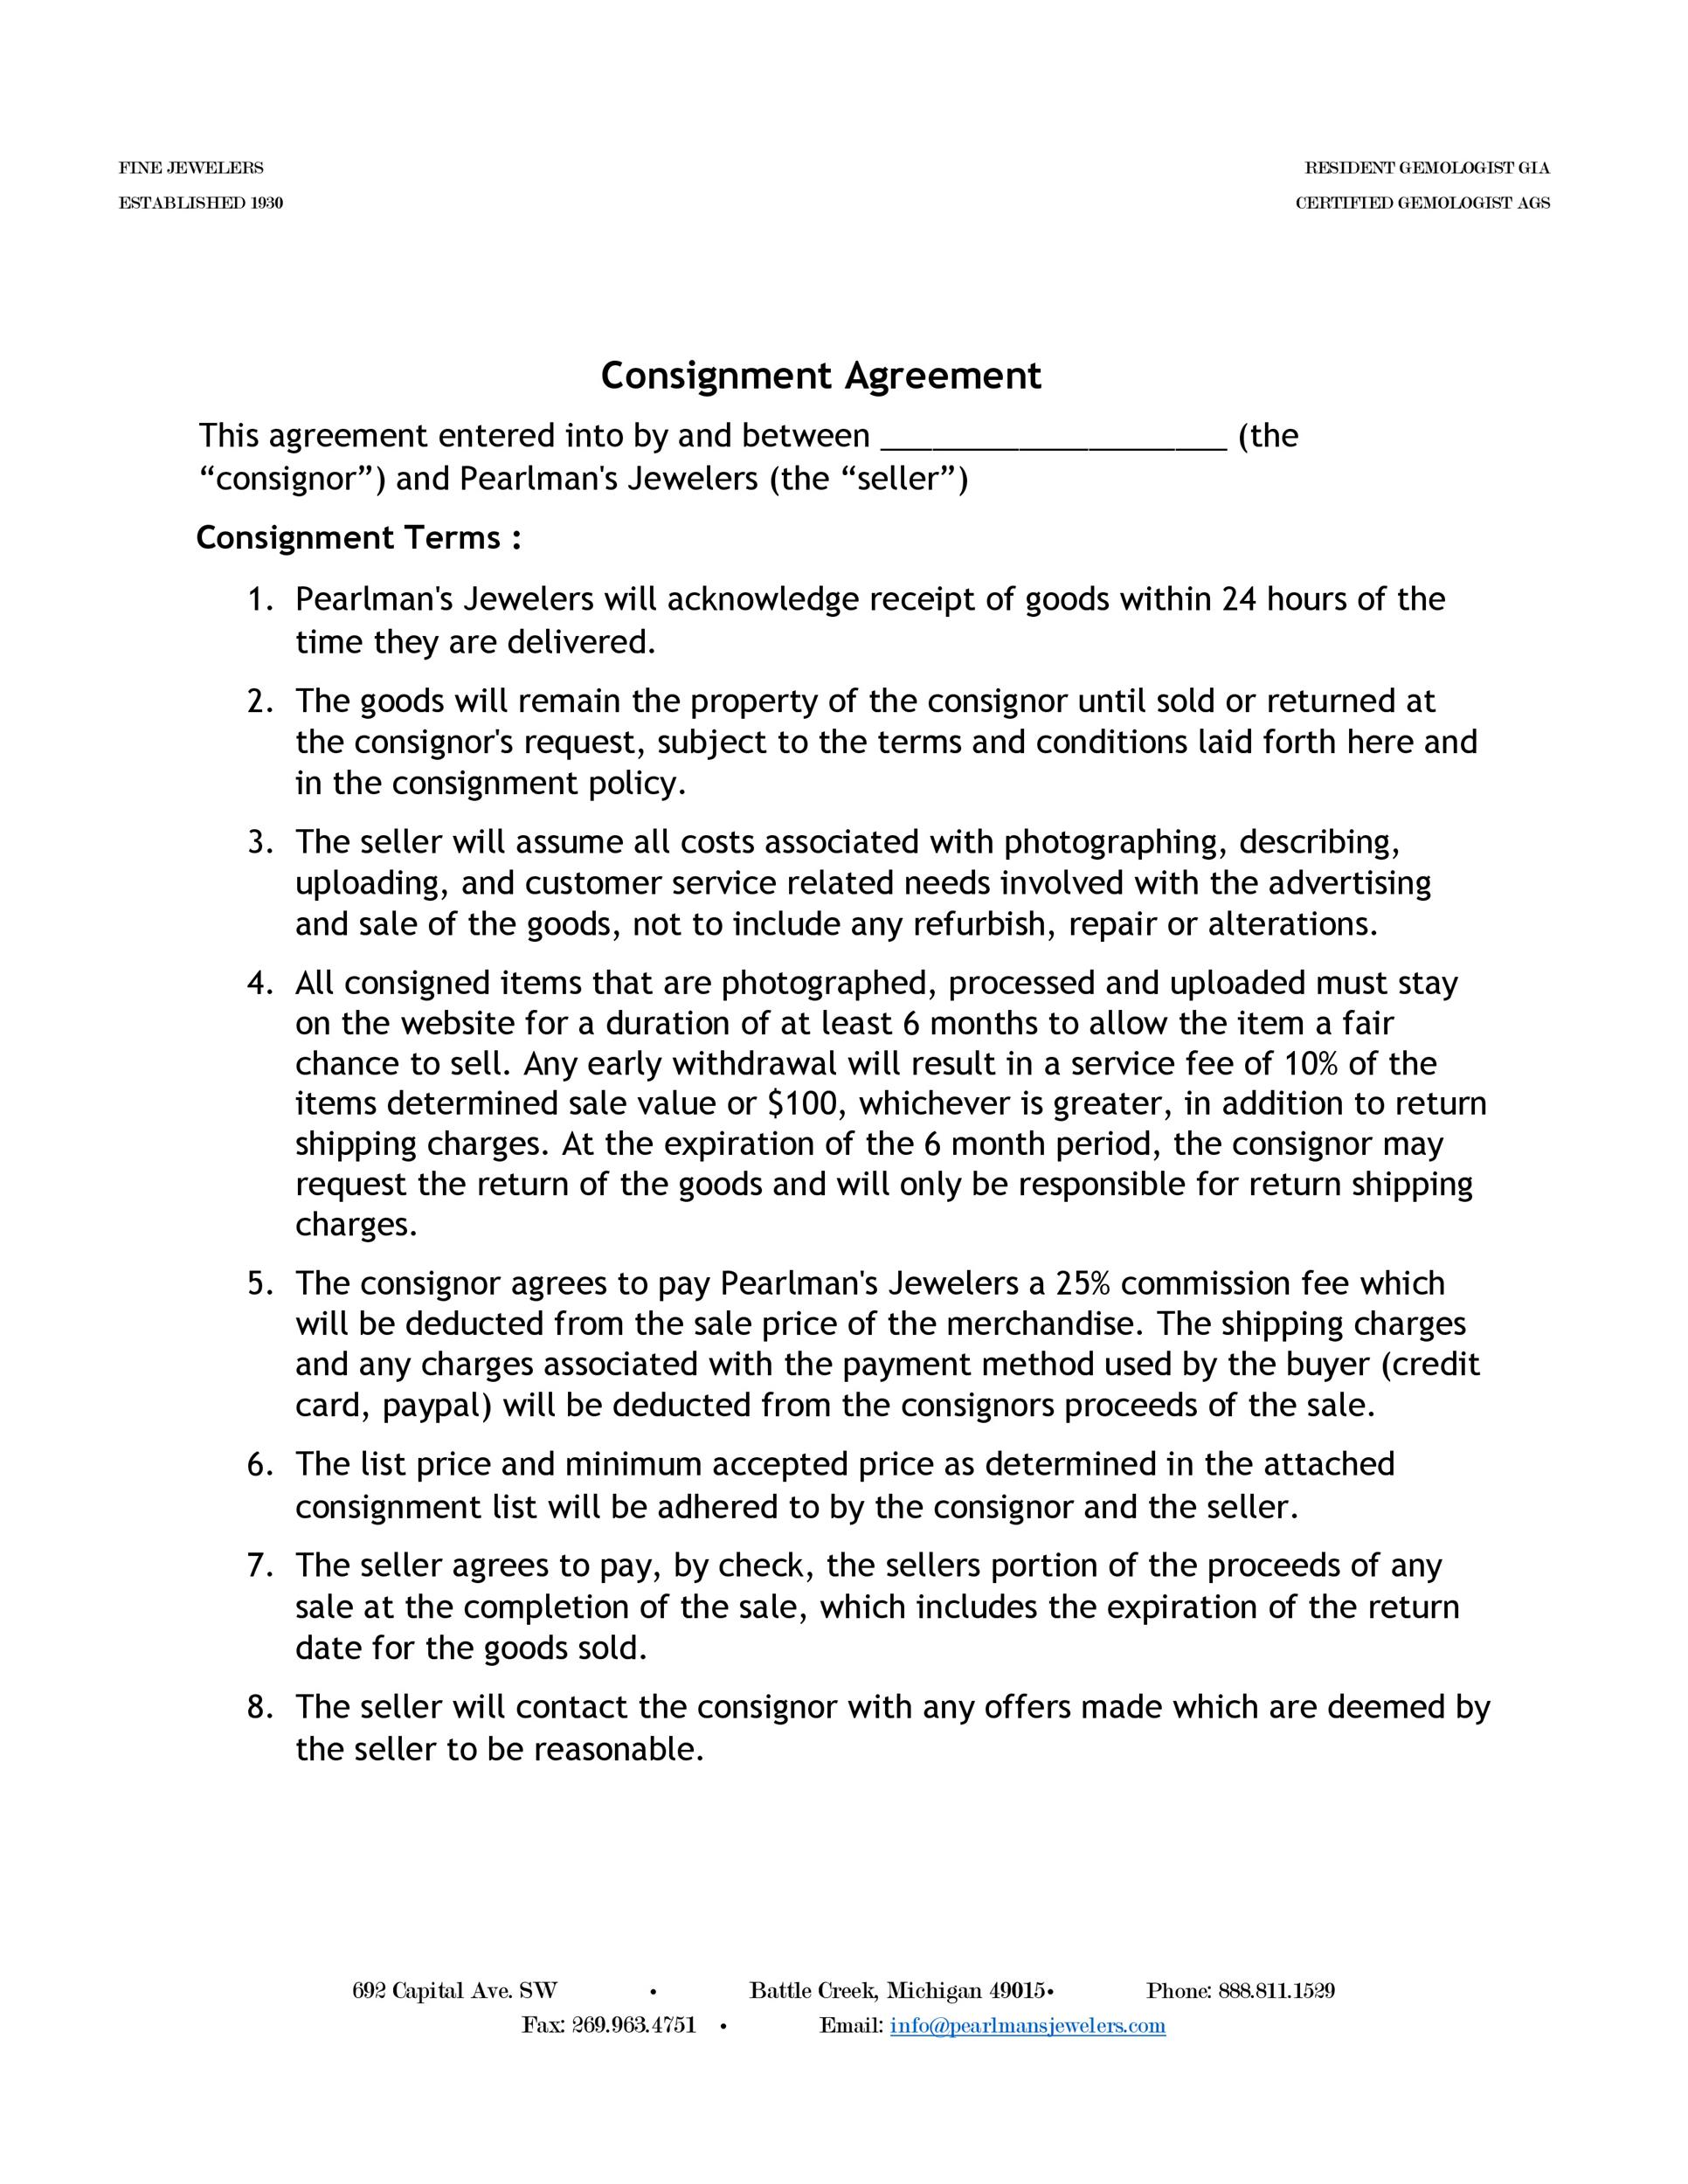 Free Consignment Agreement Template 41